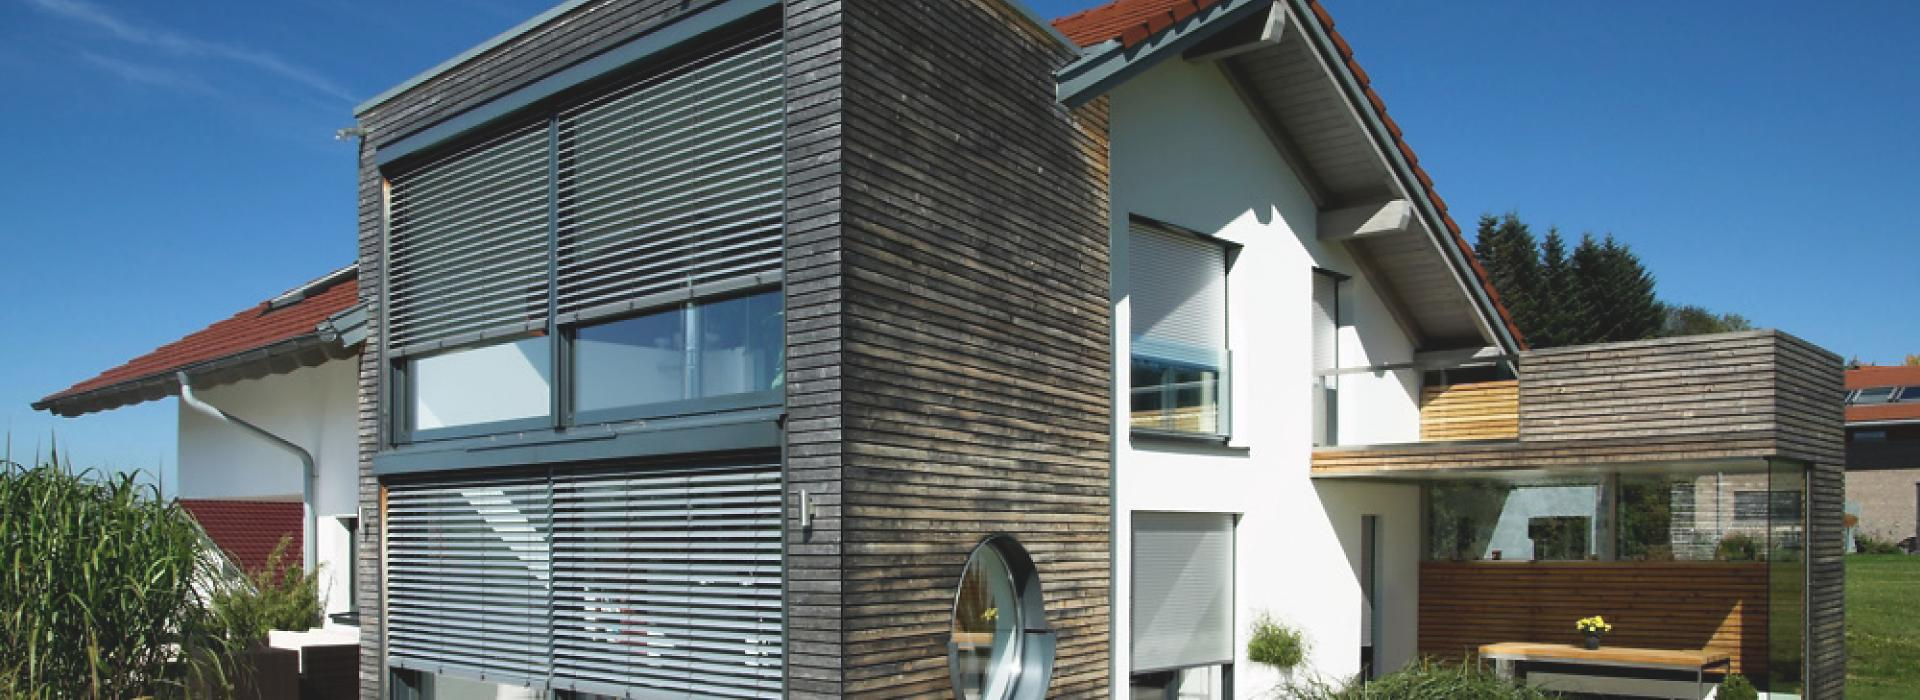 Wooden construction of house with front-mounted external venetian blinds by daylight